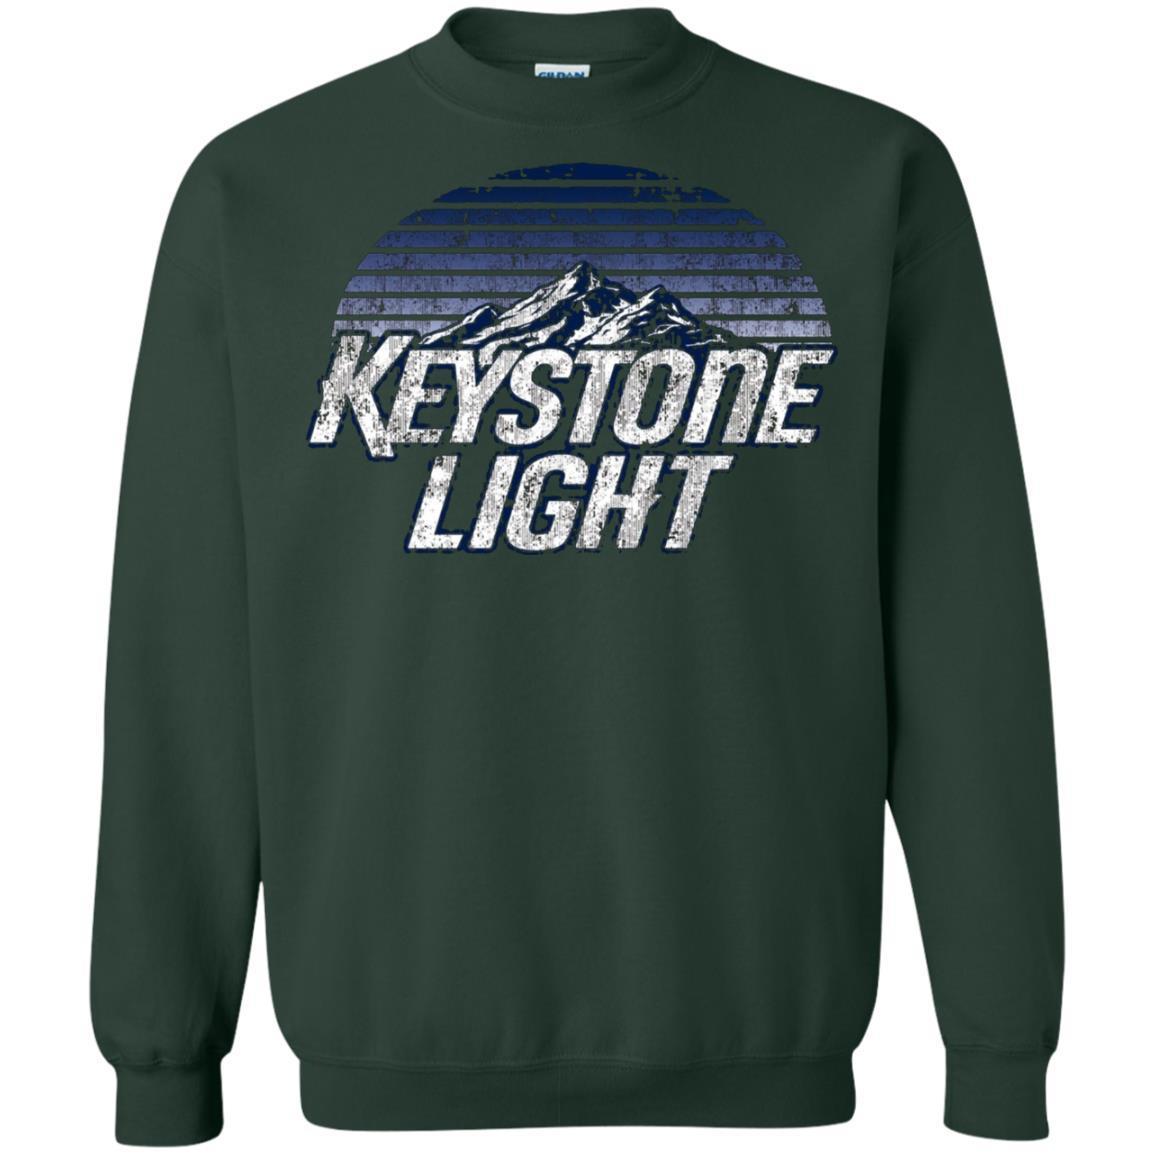 Keystone Light Beer Classic Look - Pullover Sweatshirt Forest Green / 5XL